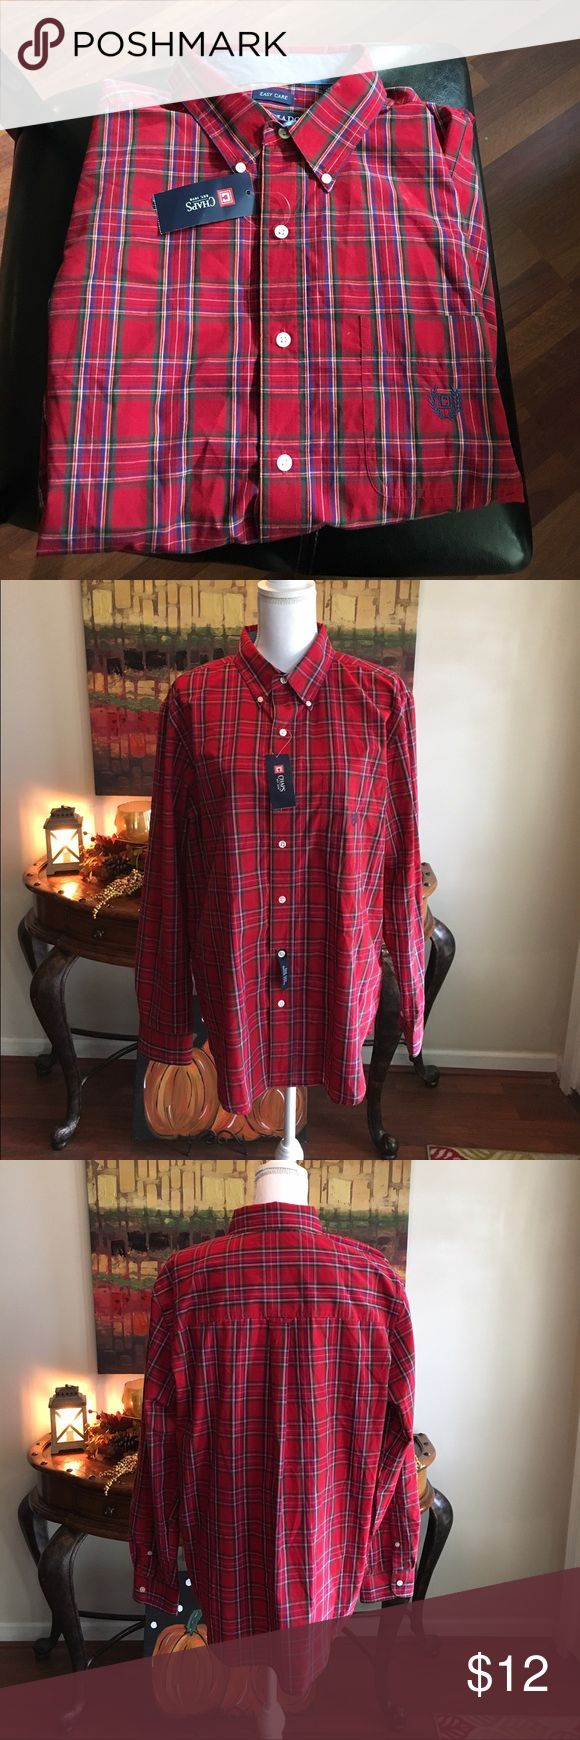 Chaps dress shirt Chaps dress shirt.  Still new with tags. Great shirt for the holiday.  Would look good with flannel vest. Size large. Thanks for looking Chaps Shirts Casual Button Down Shirts